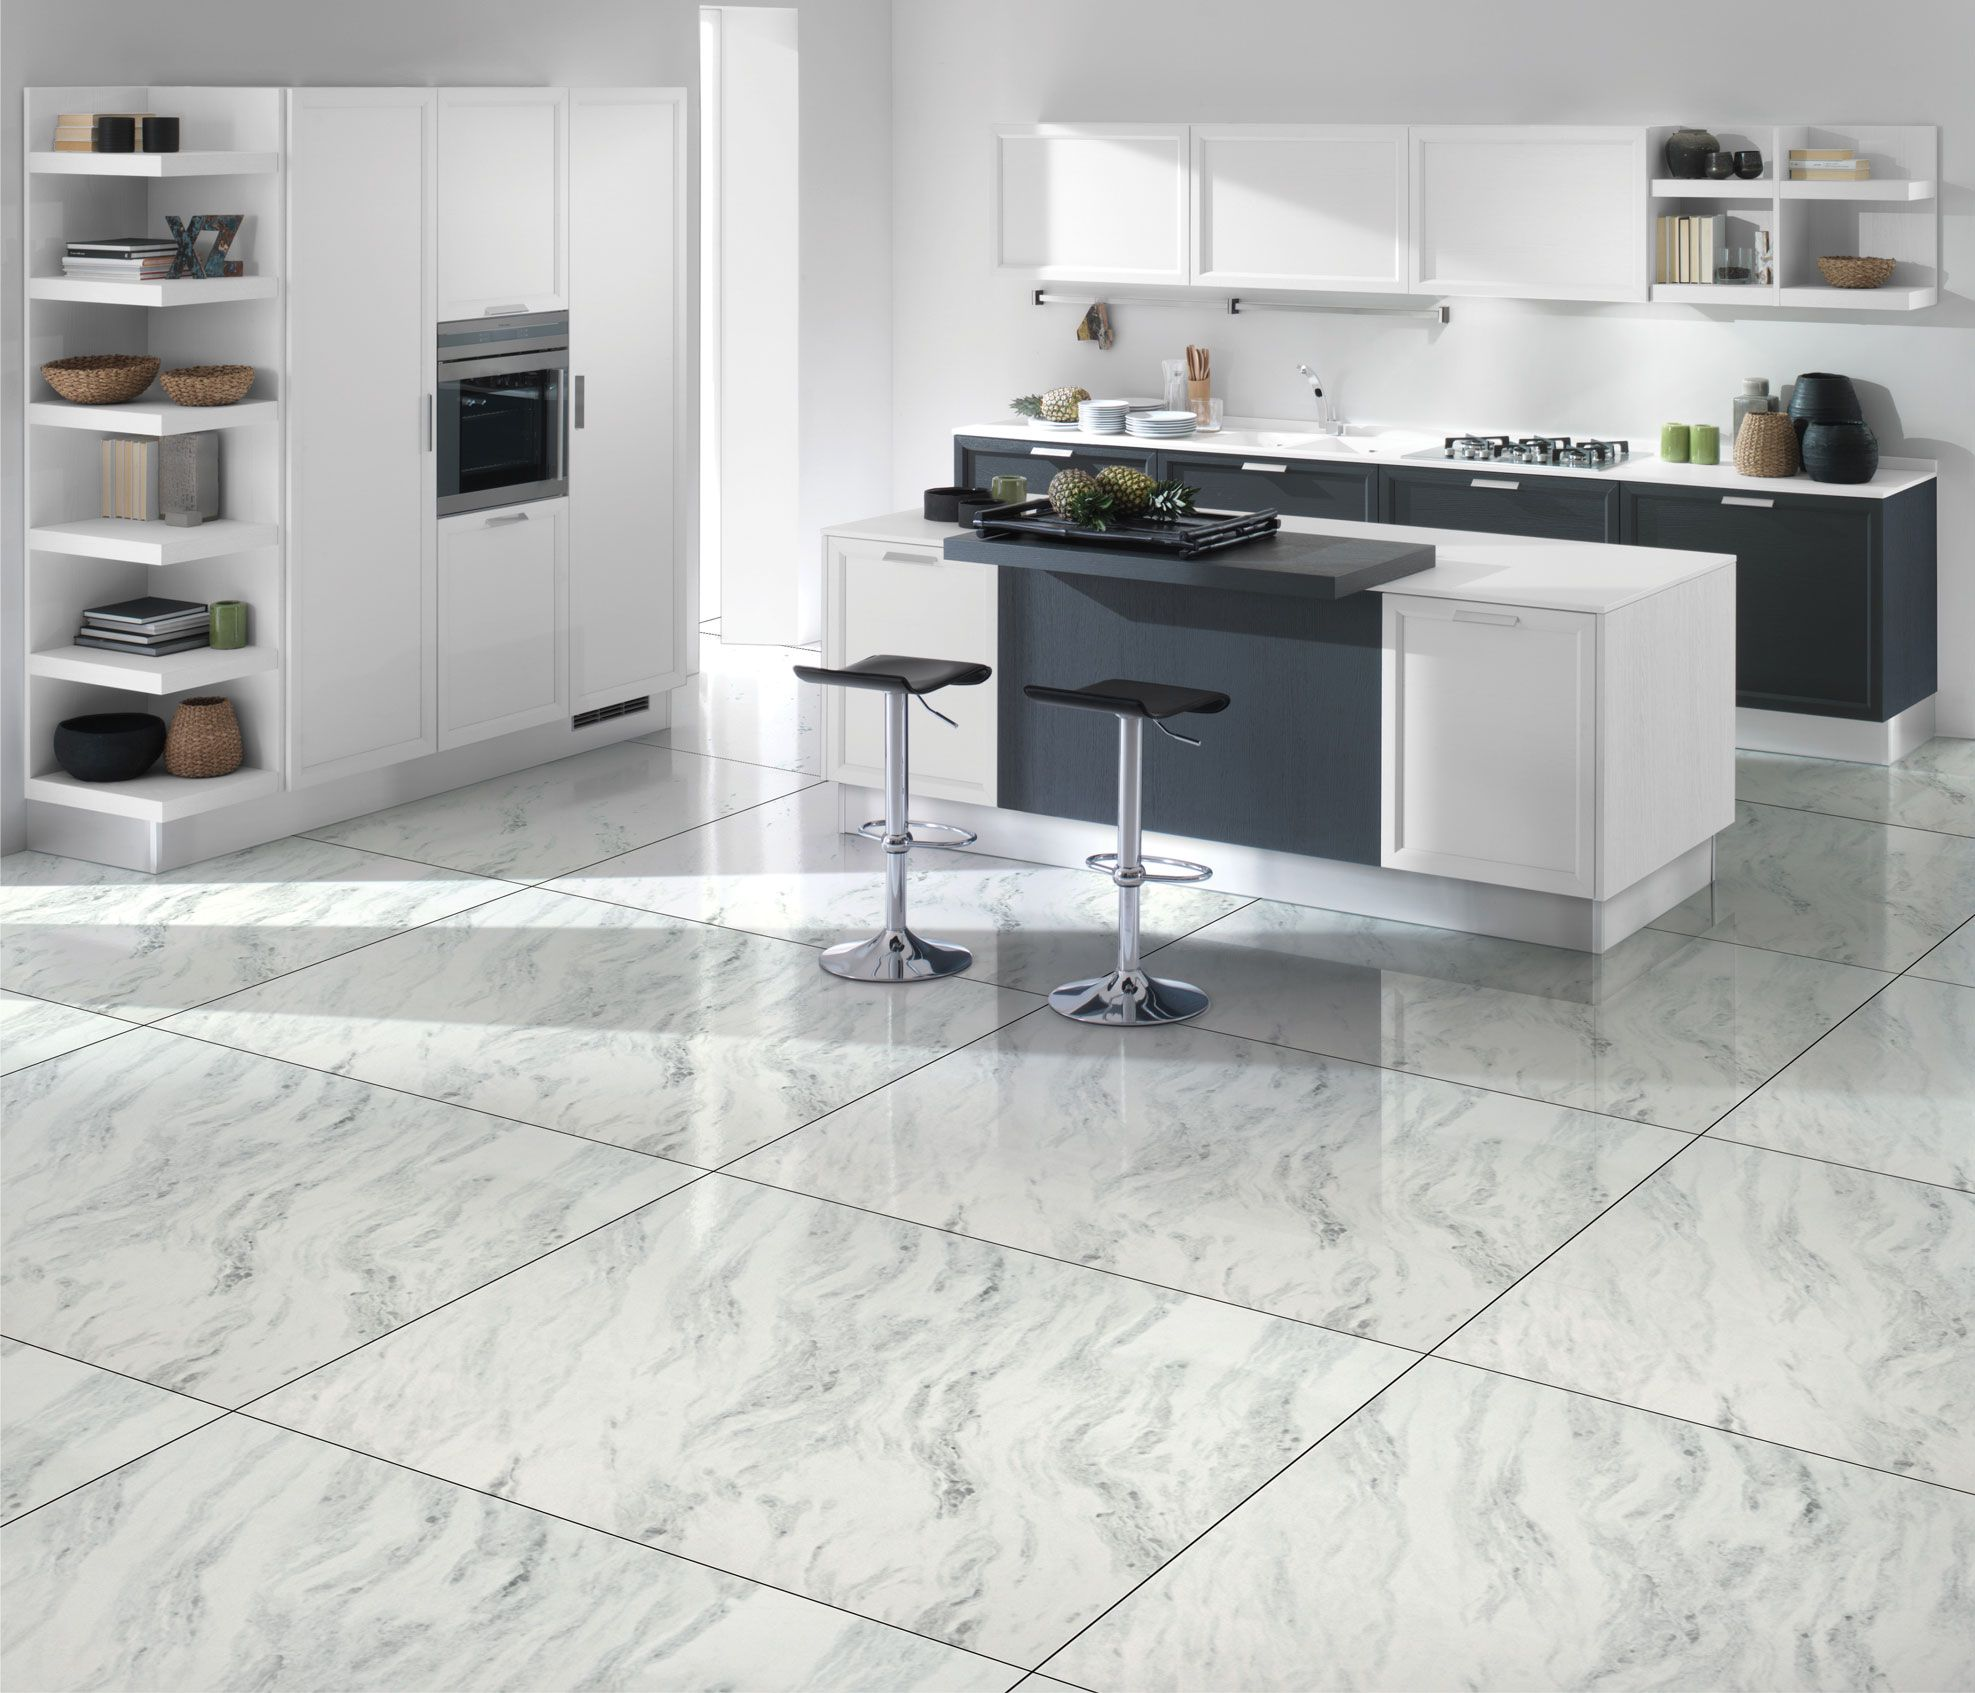 Buy Designer Floor, Wall #Tiles For Bathroom, Bedroom, #Kitchen, Living Room, Office, Vitrified